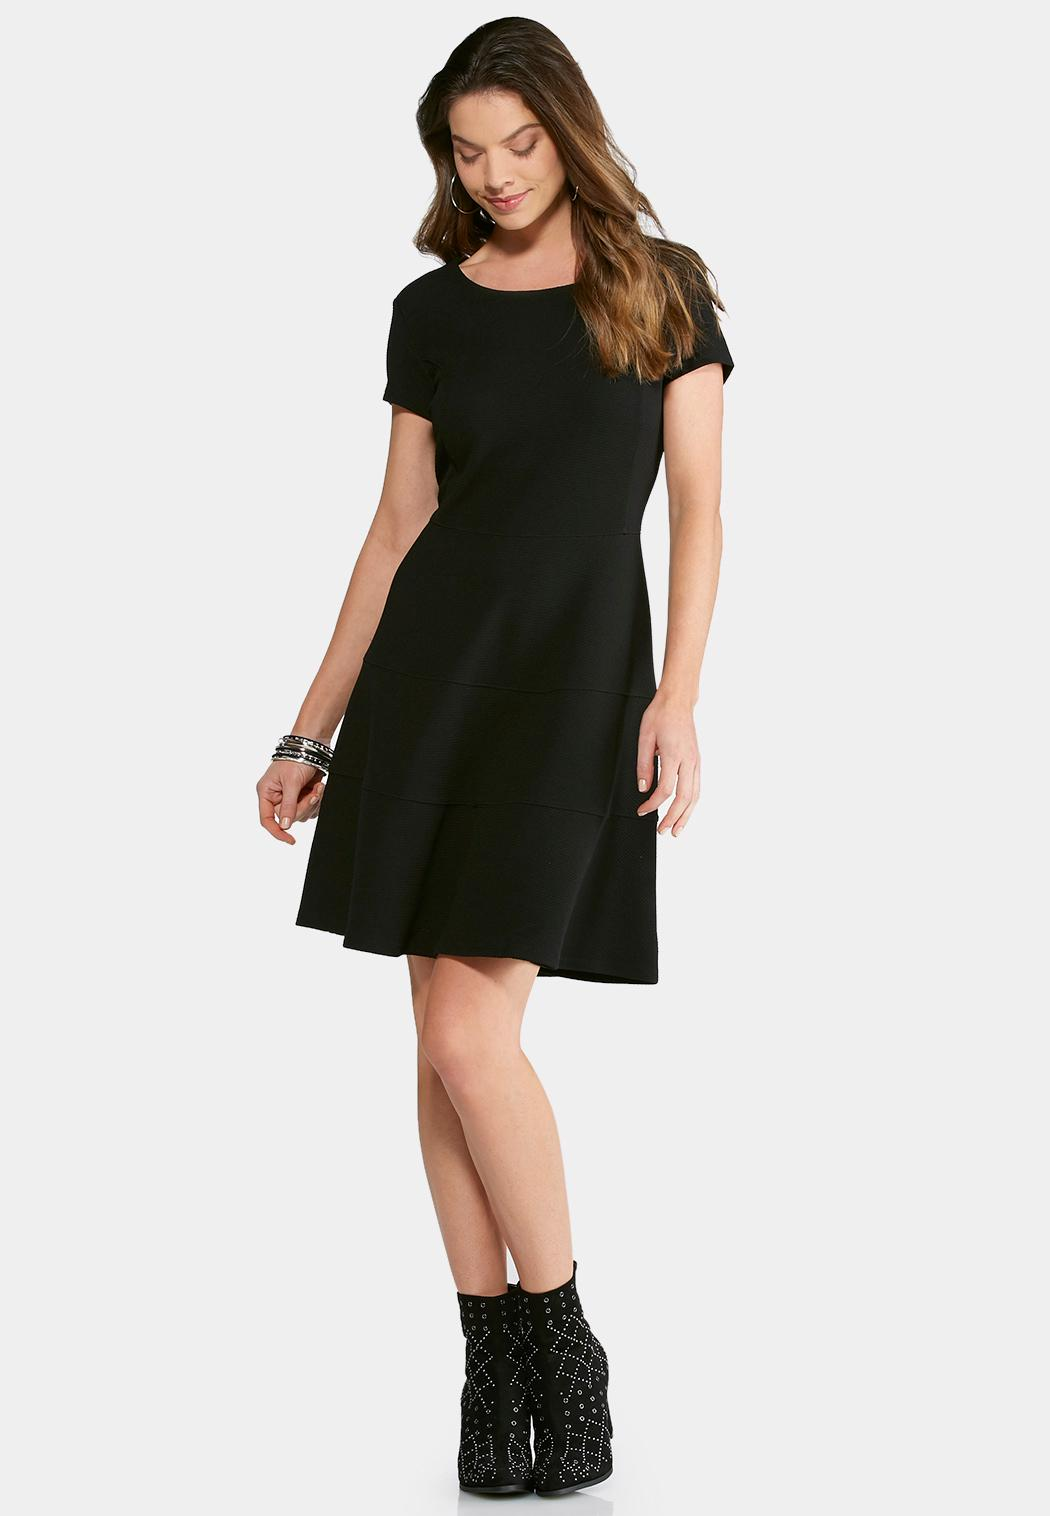 f47b4ec6bb Textured Fit and Flare Dress A-line   Swing Cato Fashions